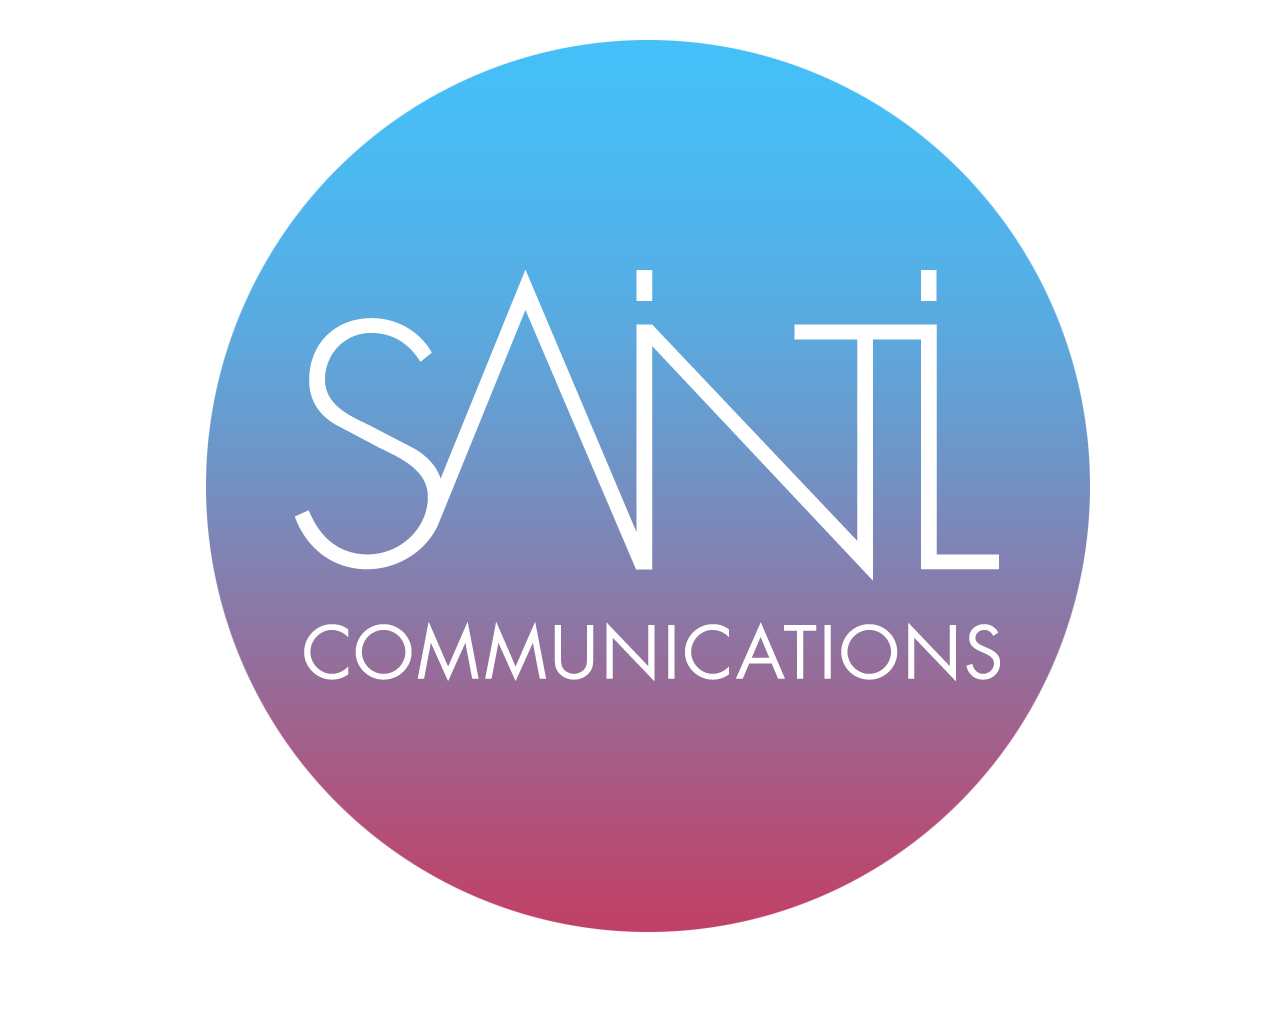 SAINTIL COMMUNICATIONS